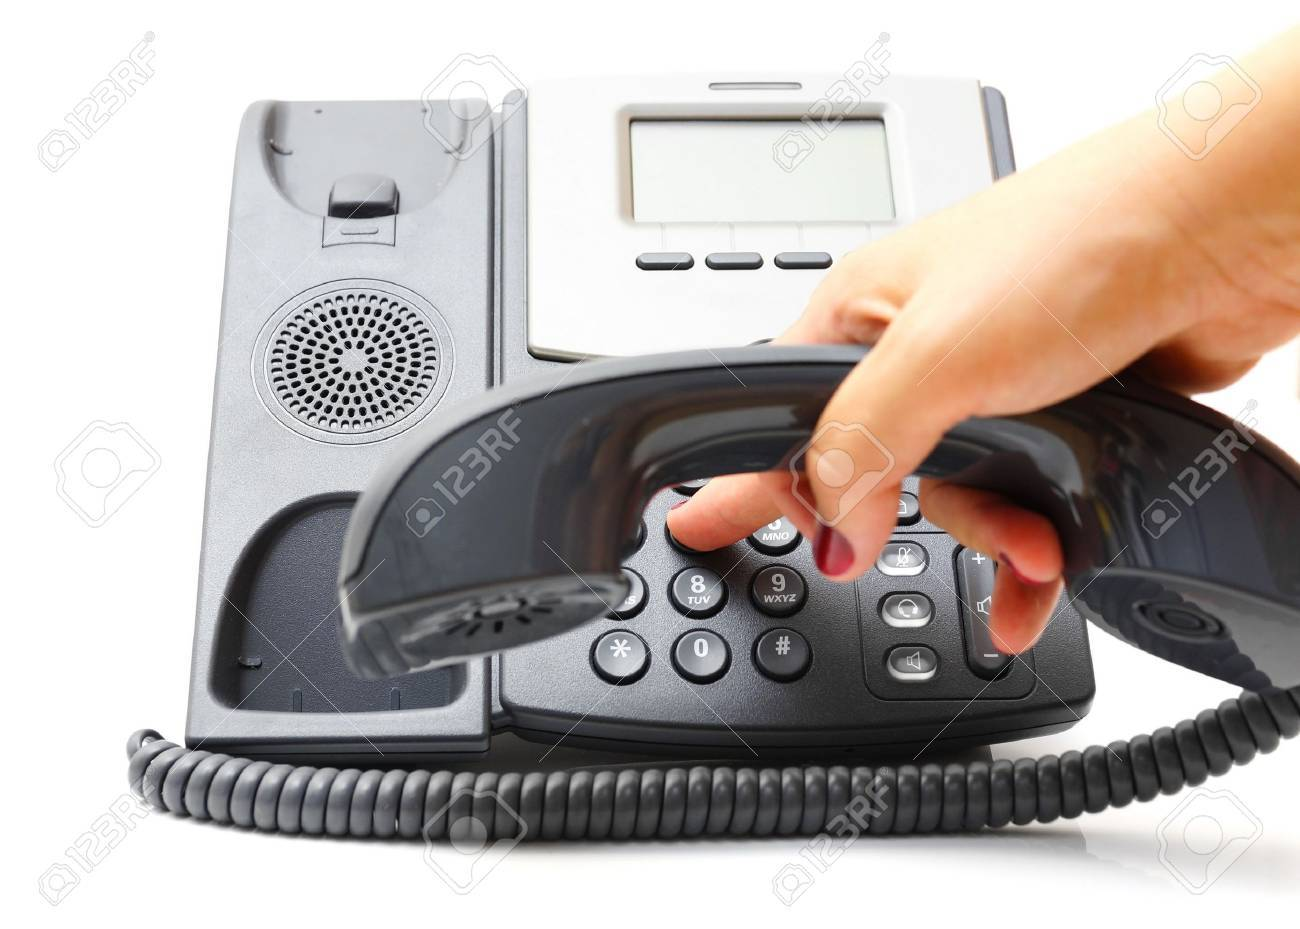 woman hand is dialing a phone number Stock Photo - 21455402